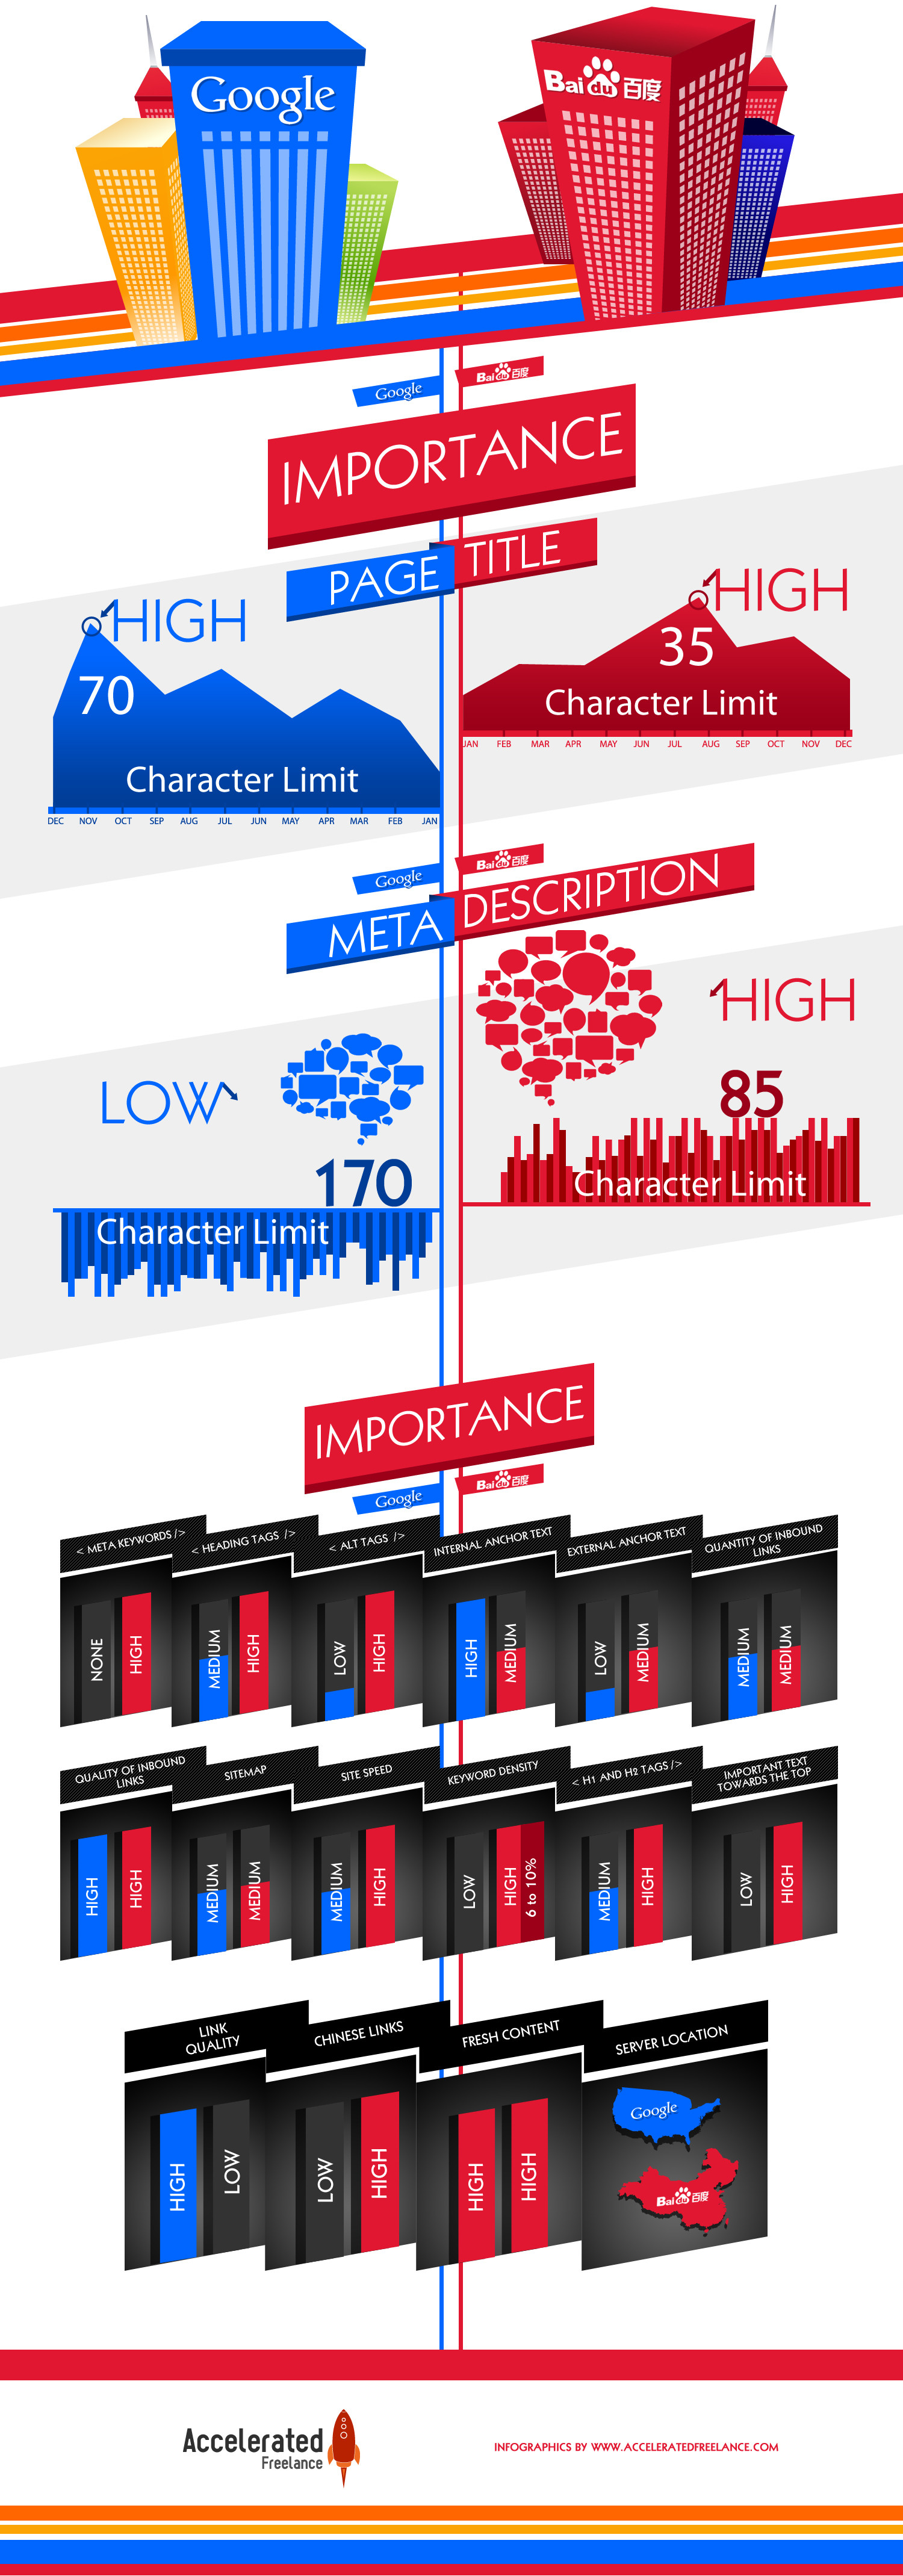 Google VS Baidu Infographic